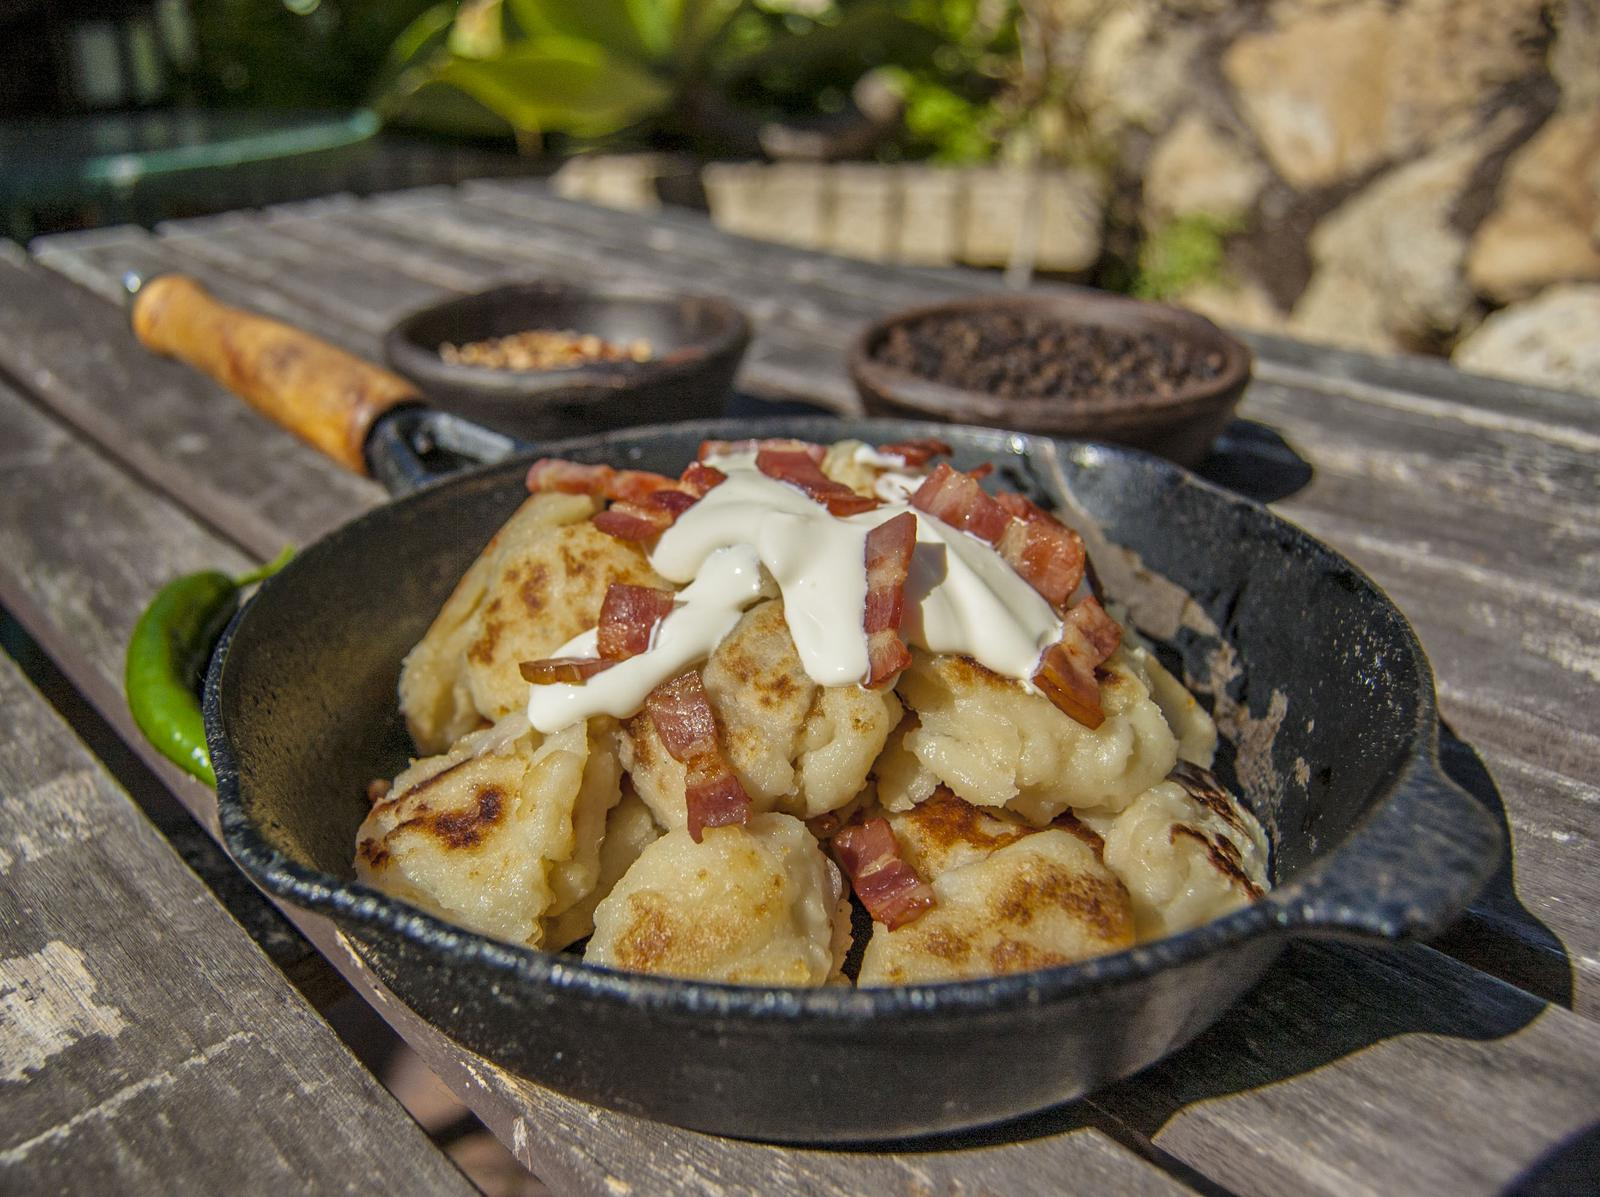 Dodolle - Pan fried Hungarian Potato Dumplings with savoury toppings